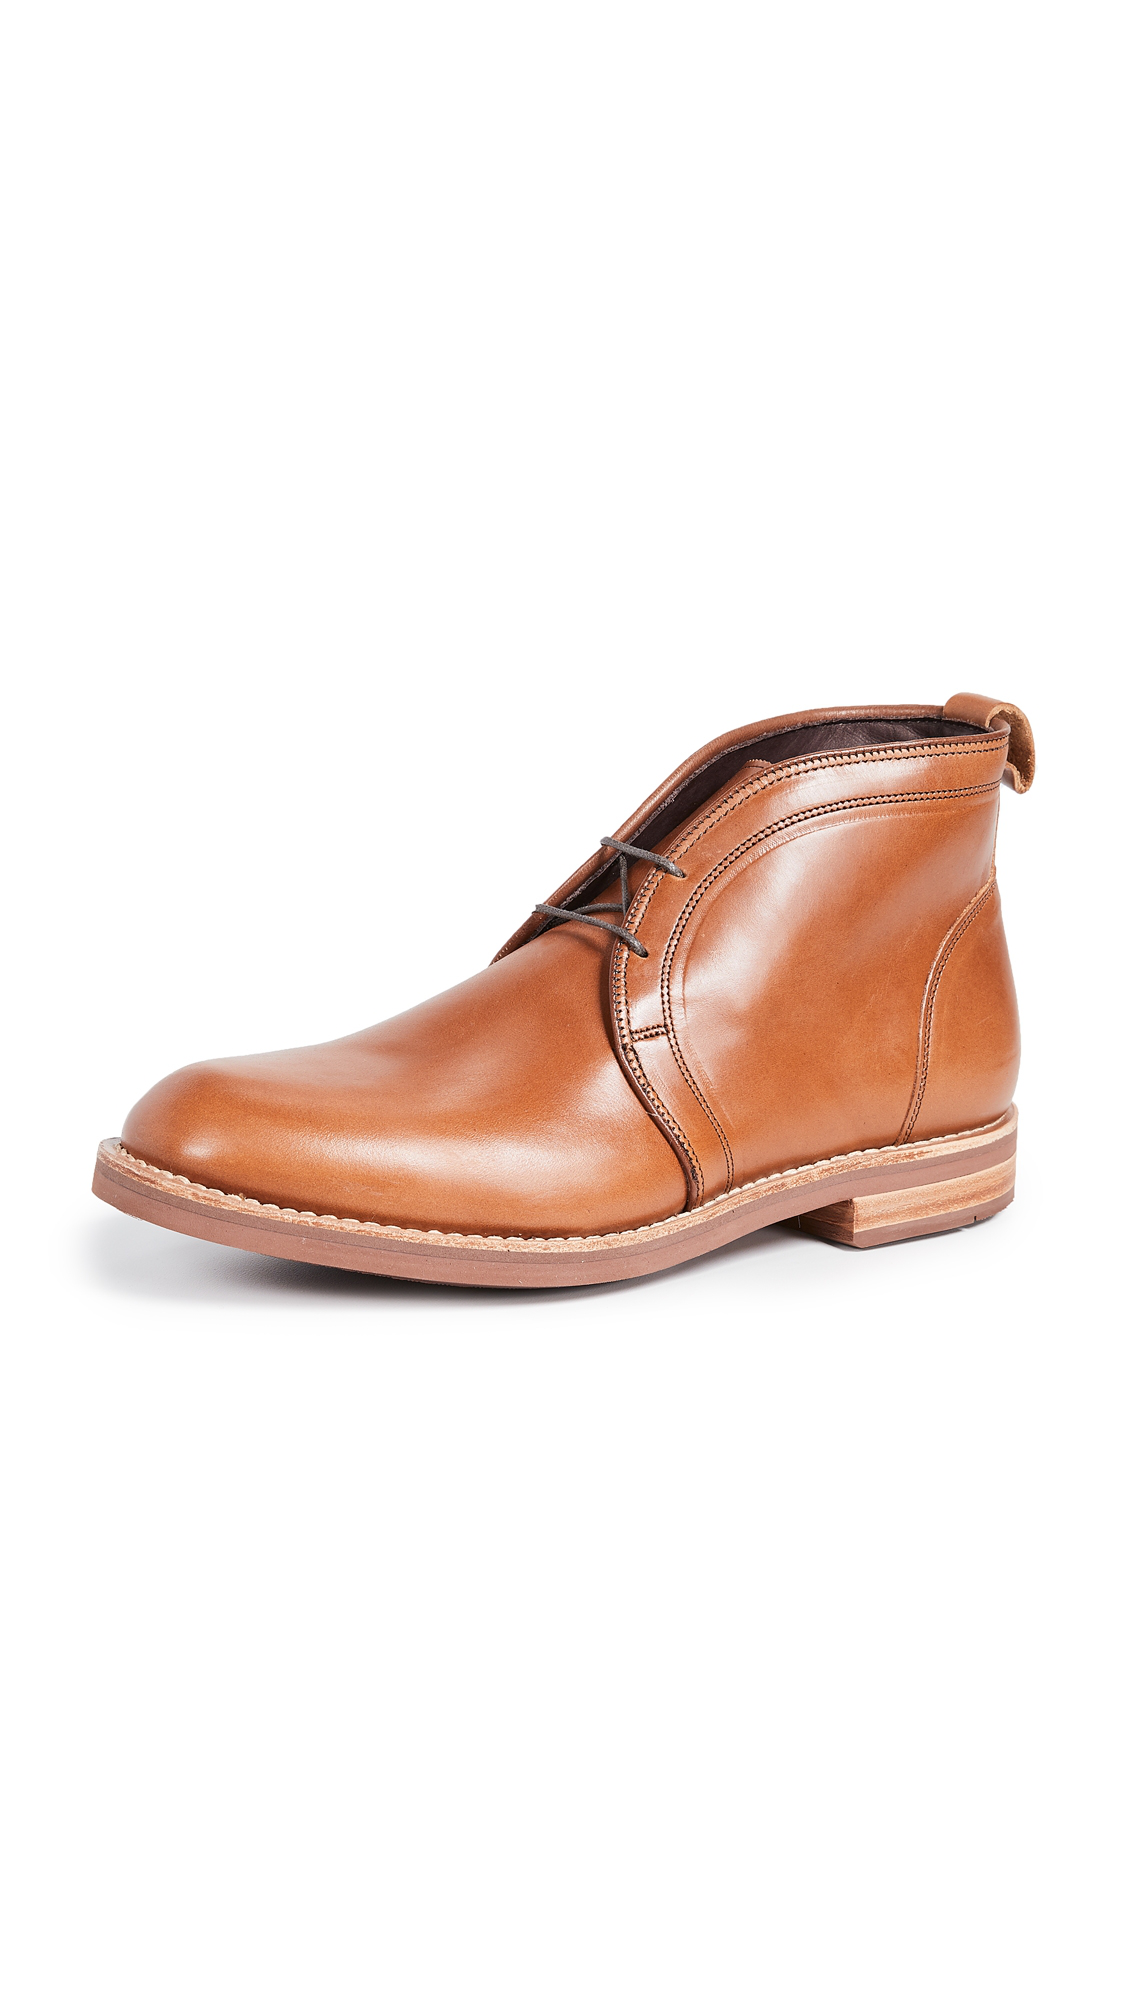 ef47494dd9c Nomad Chukka Boots in Spice